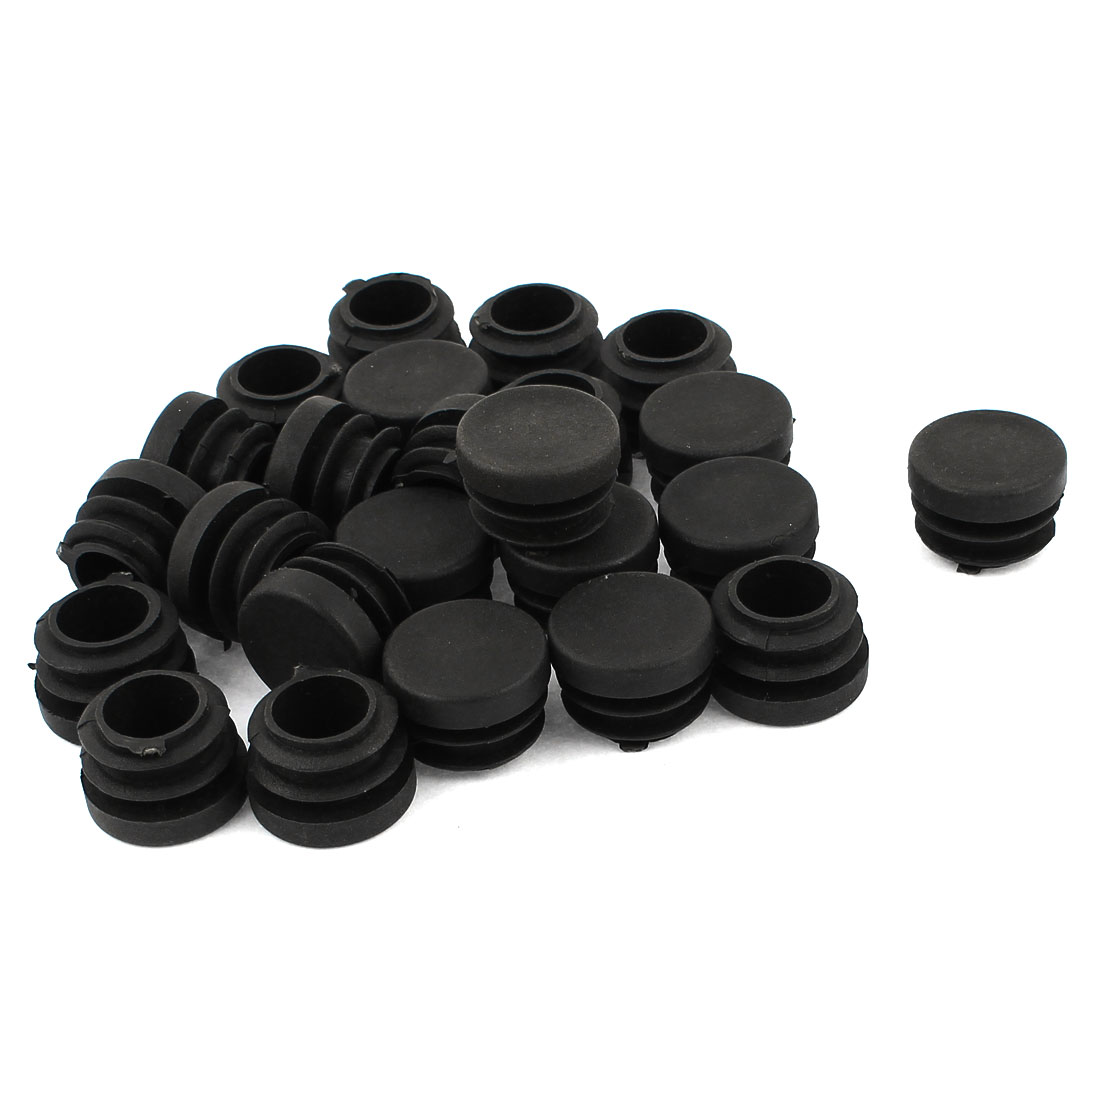 24 Pcs Black Plastic 22mm Dia Round Blanking End Caps Ribbed Tubing Inserts